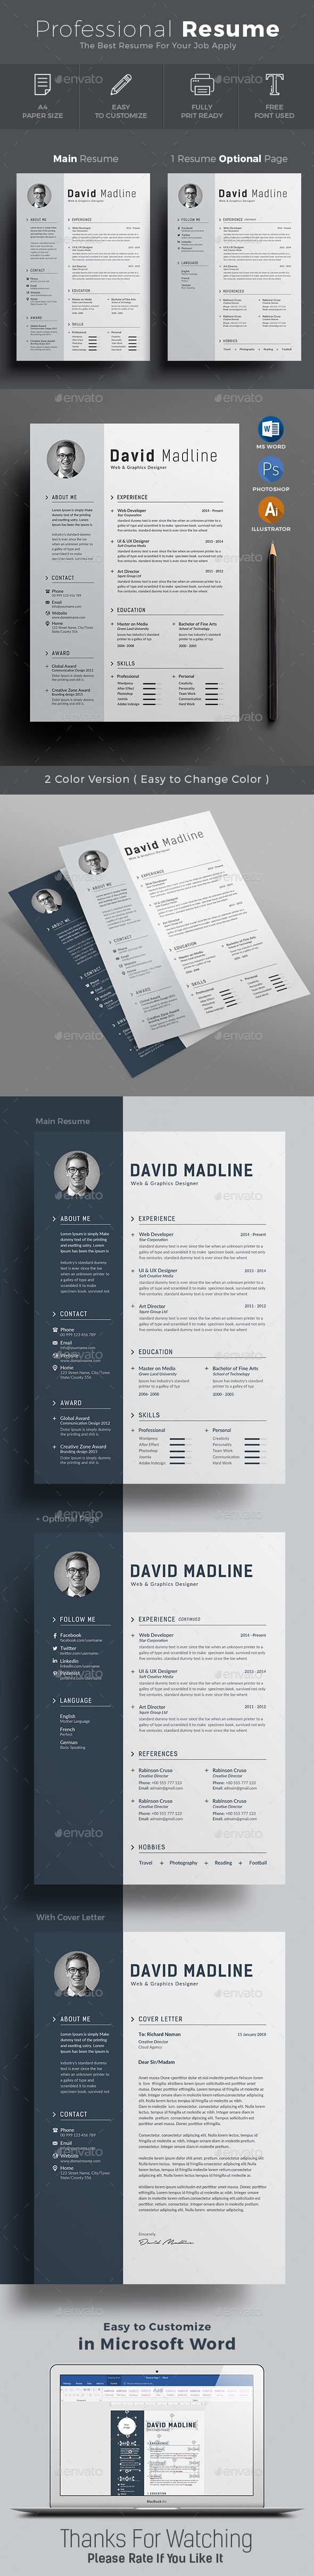 Resume cv 2017 template to help you land that great job. The flexible page designs are easy to use and customize, so you can quickly tailor-make your resume for any opportunity. #resume #cv #template